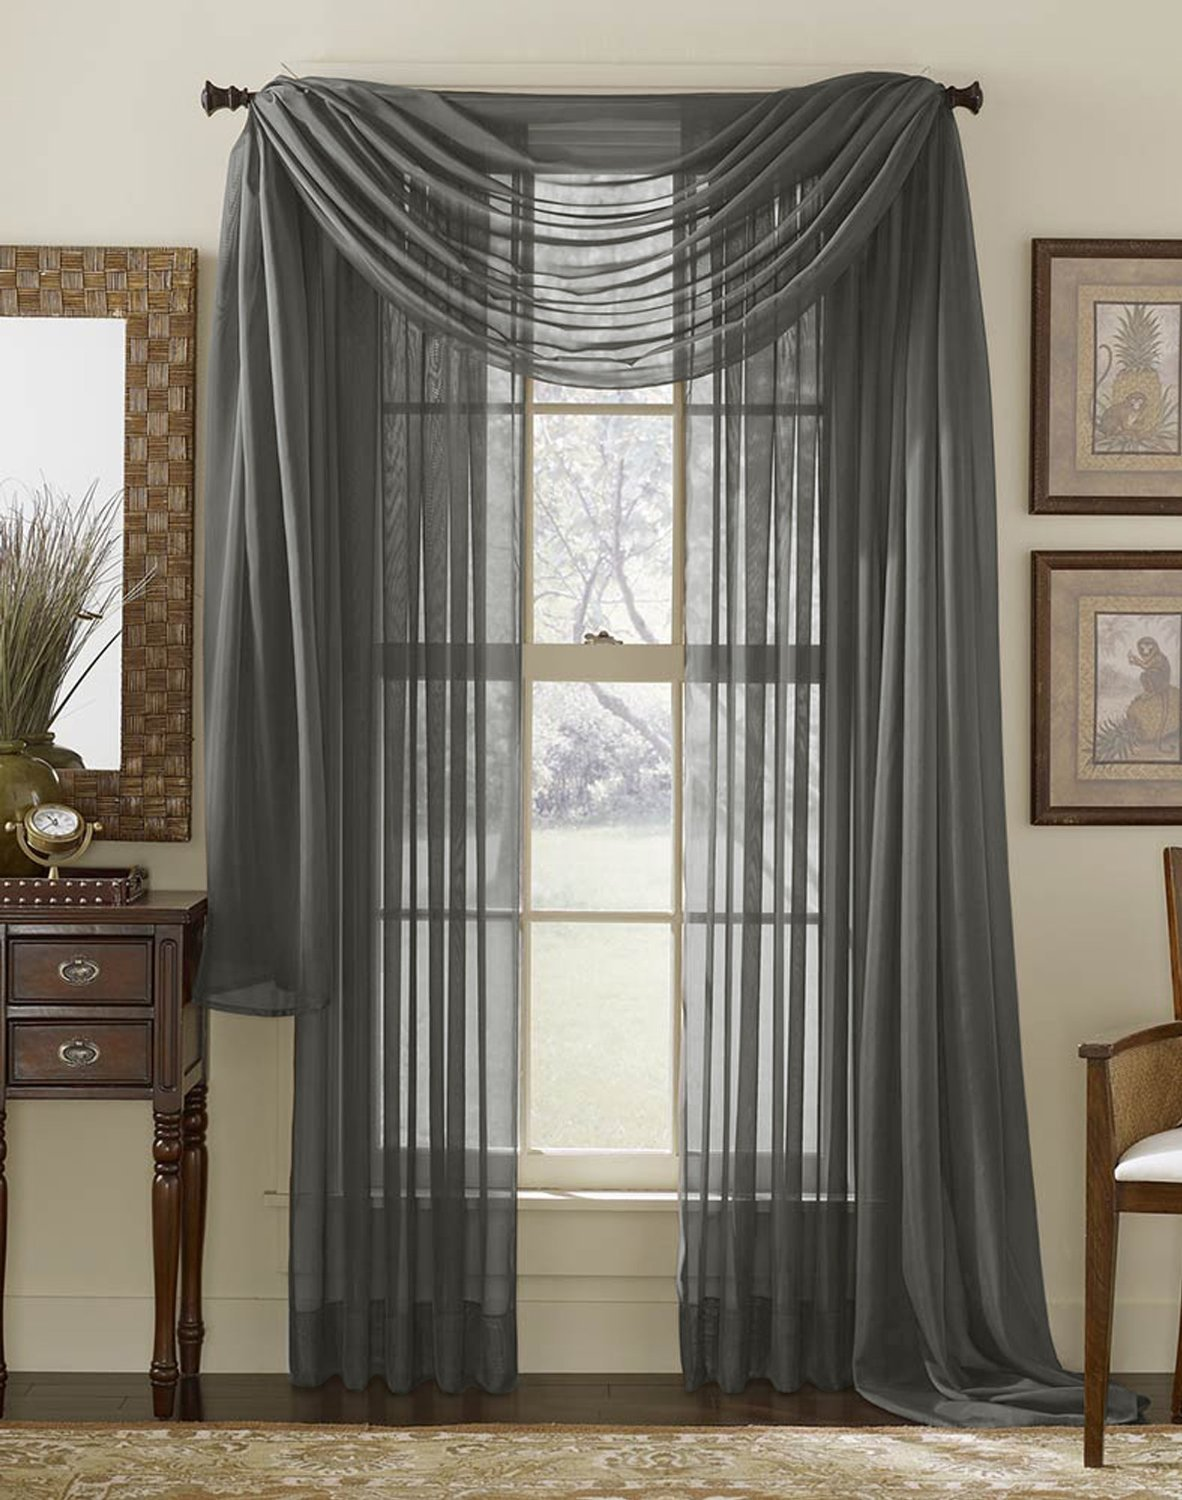 home drapes idea valance your design for and swags popular decorations decorative valances